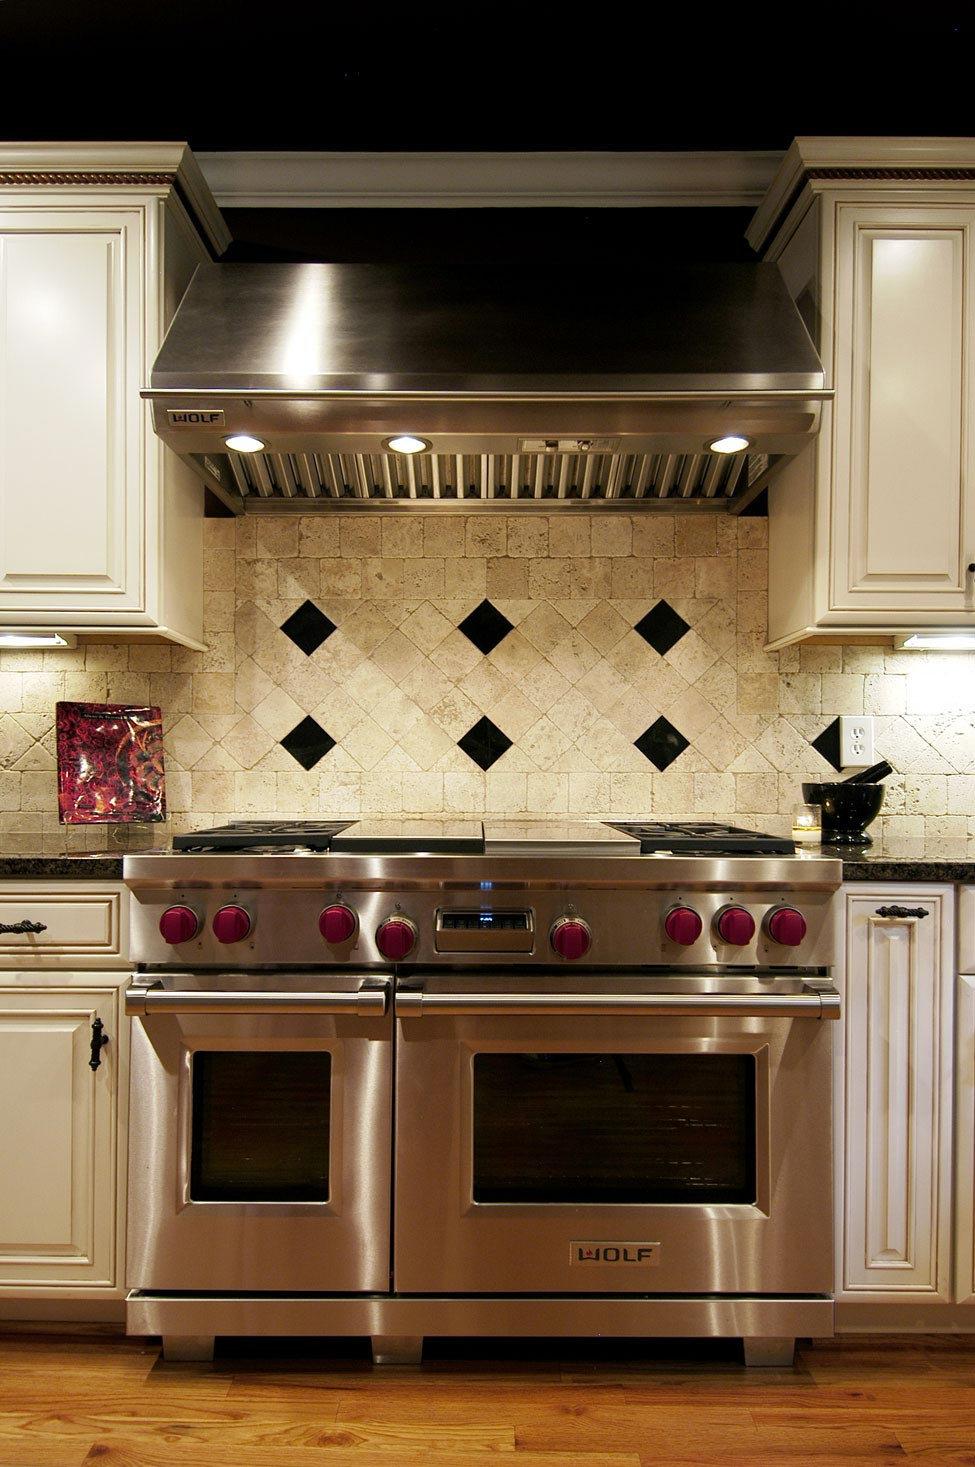 View of stovetop with custom tile backsplash in black and white